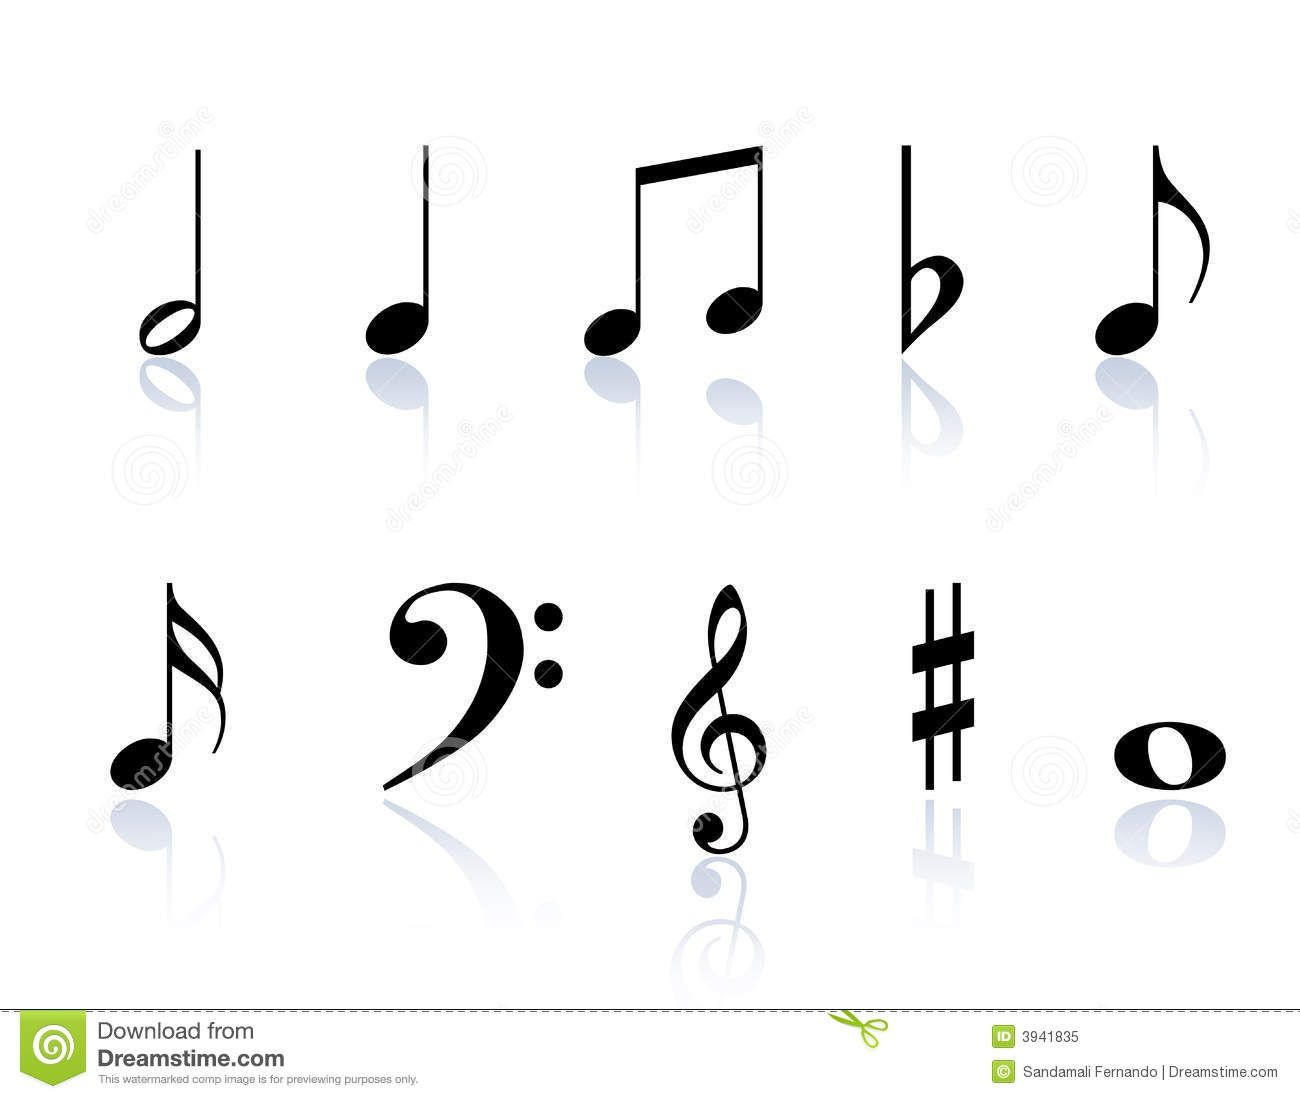 Music notes symbols something interesting music symbols music notes symbols something interesting buycottarizona Images